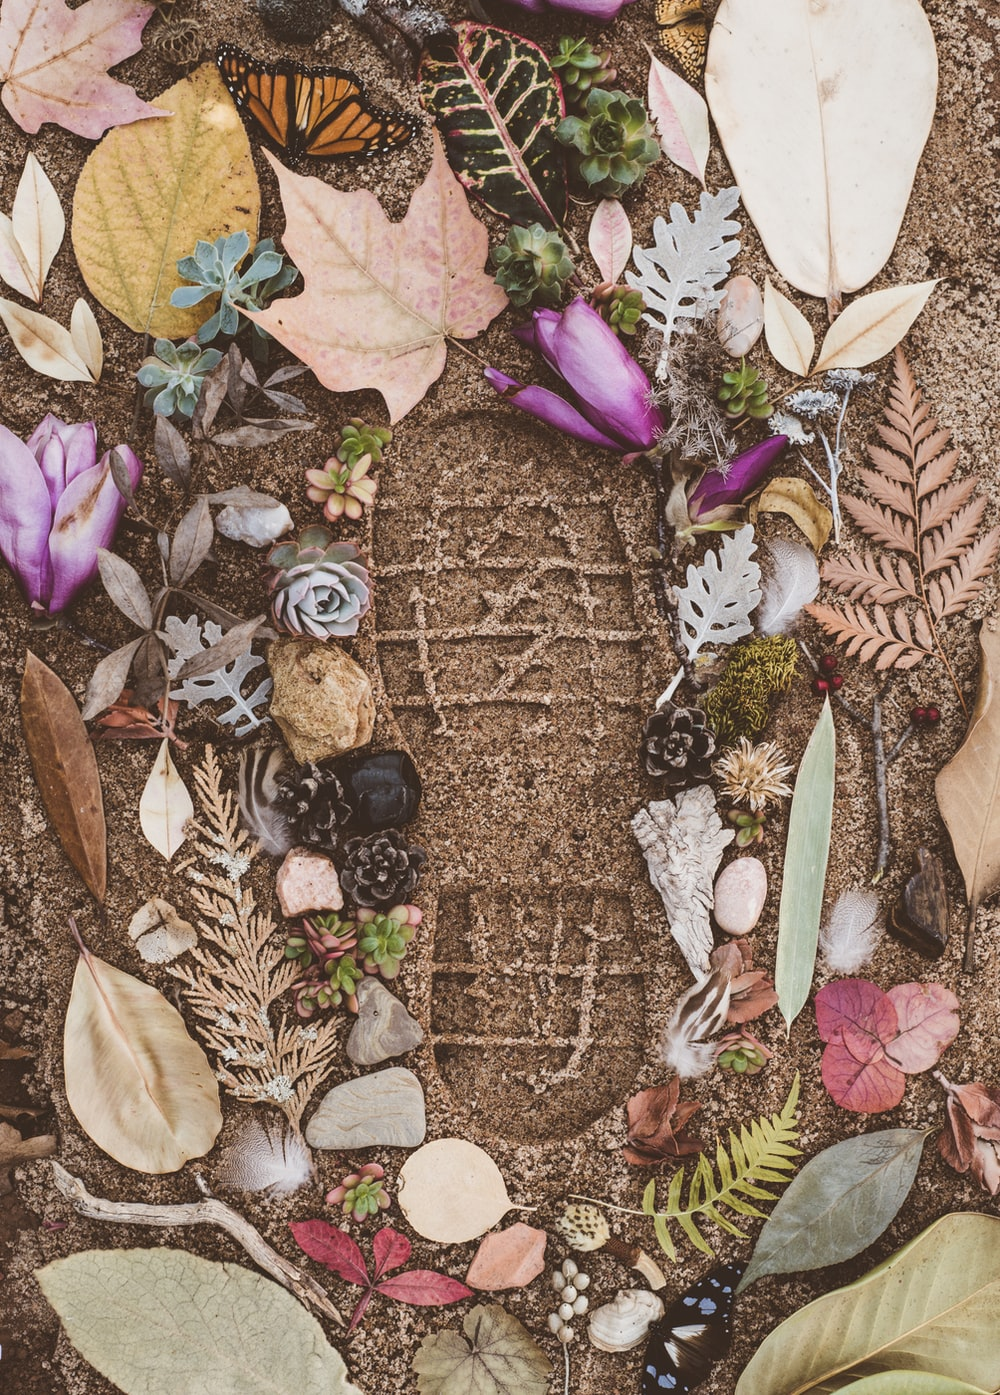 assorted flowers and leaves on sand with shoe mark